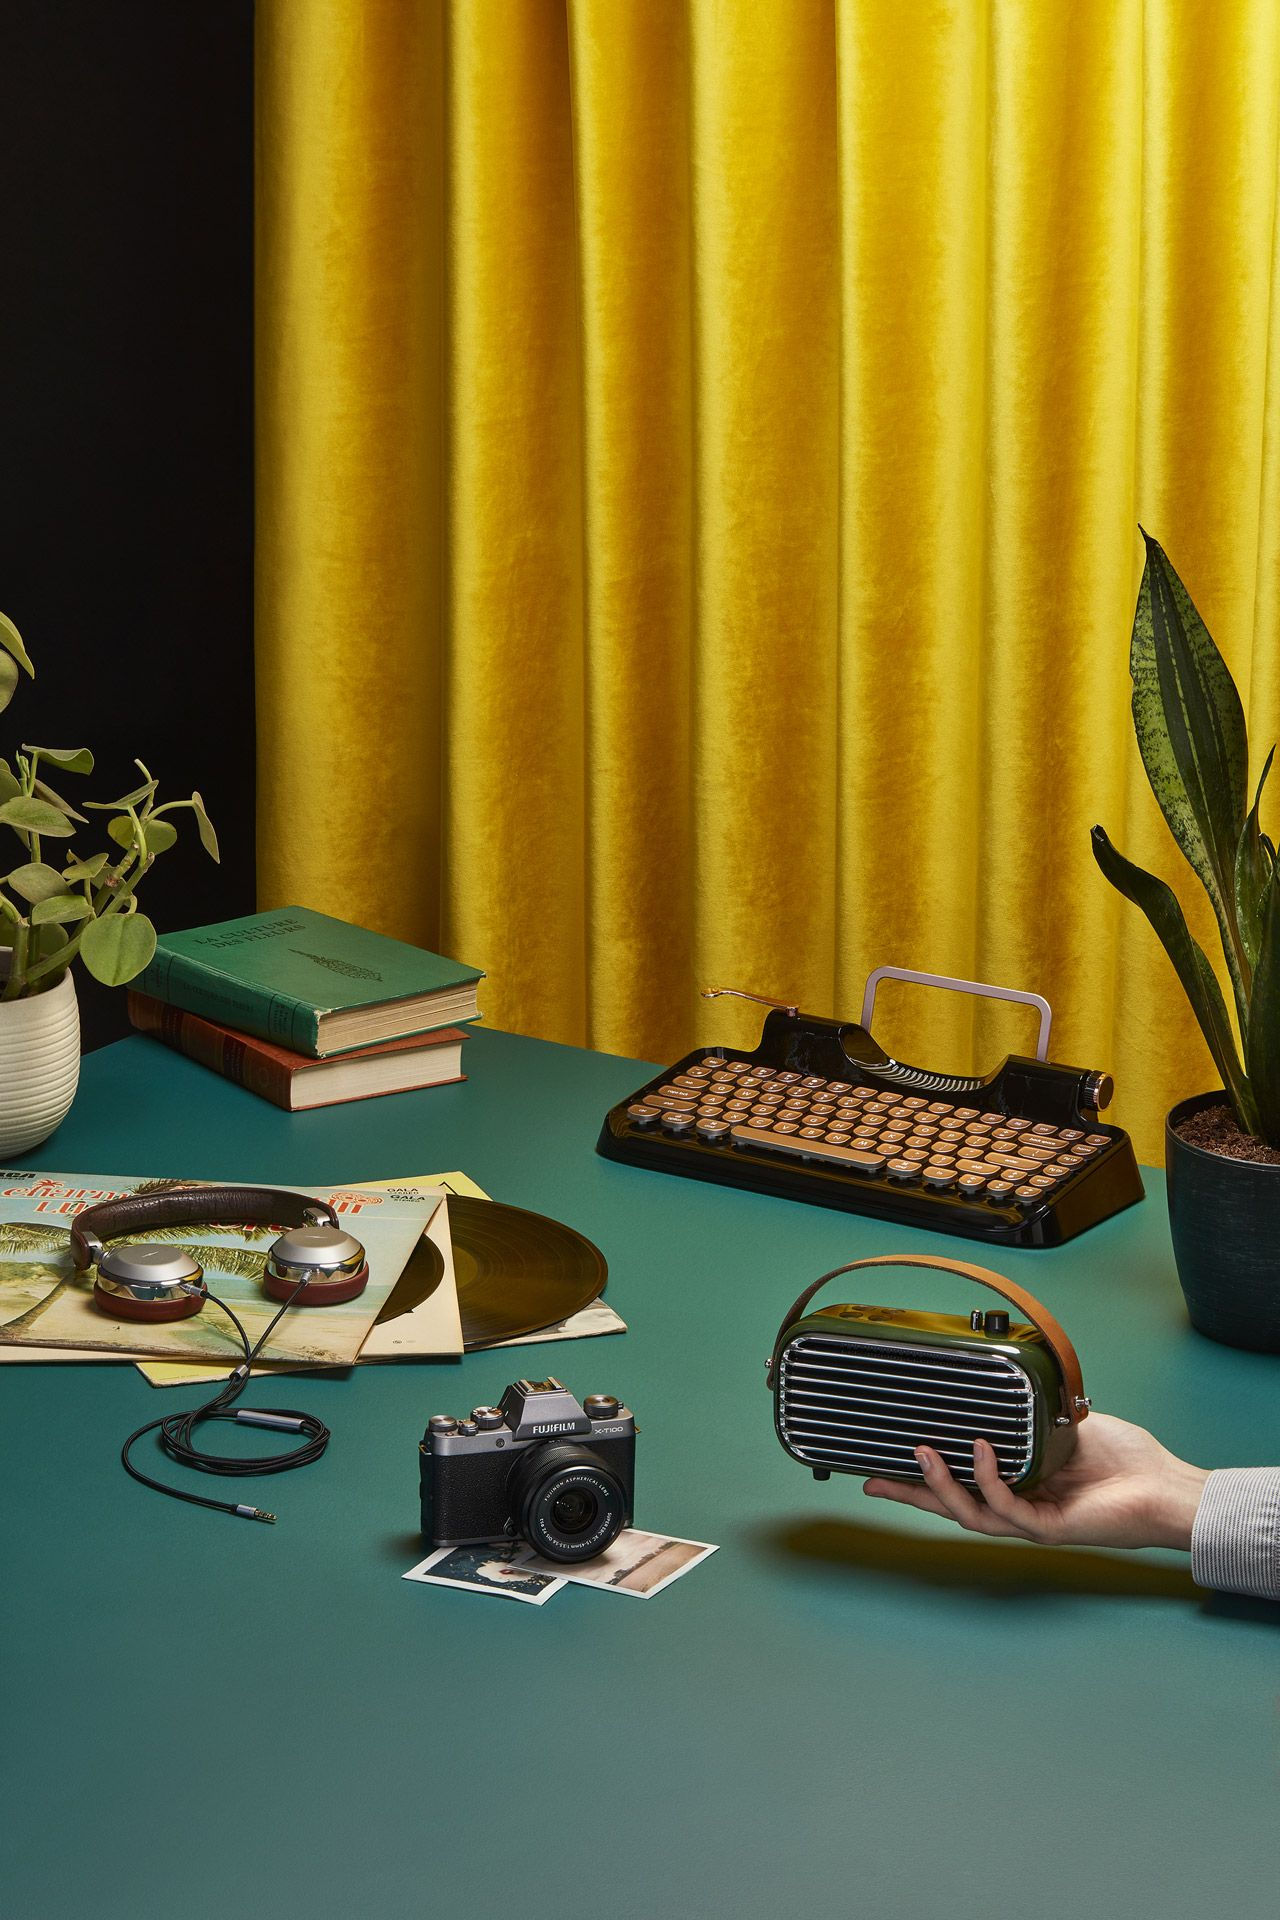 dark green table vintage radio typewriter vinyls argentic camera old books on top and yellow curtain in the background by Mathieu Levesque for enRoute Magazine Air Canada